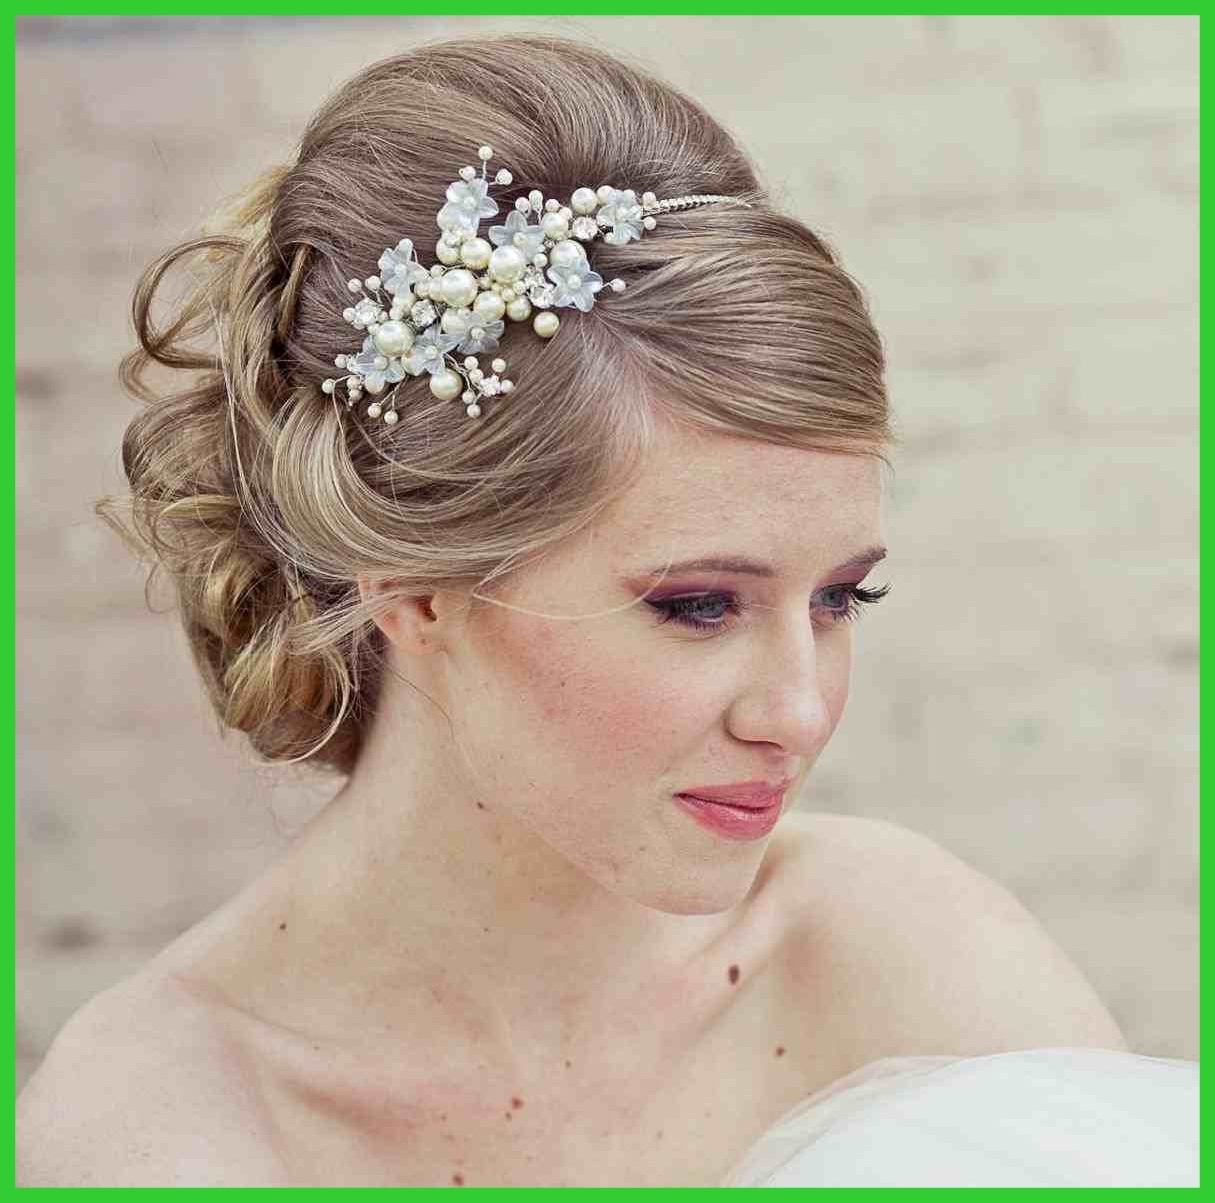 Wedding Hairstyle With Headband: 2019 Popular Wedding Hairstyles For Long Hair With Veil